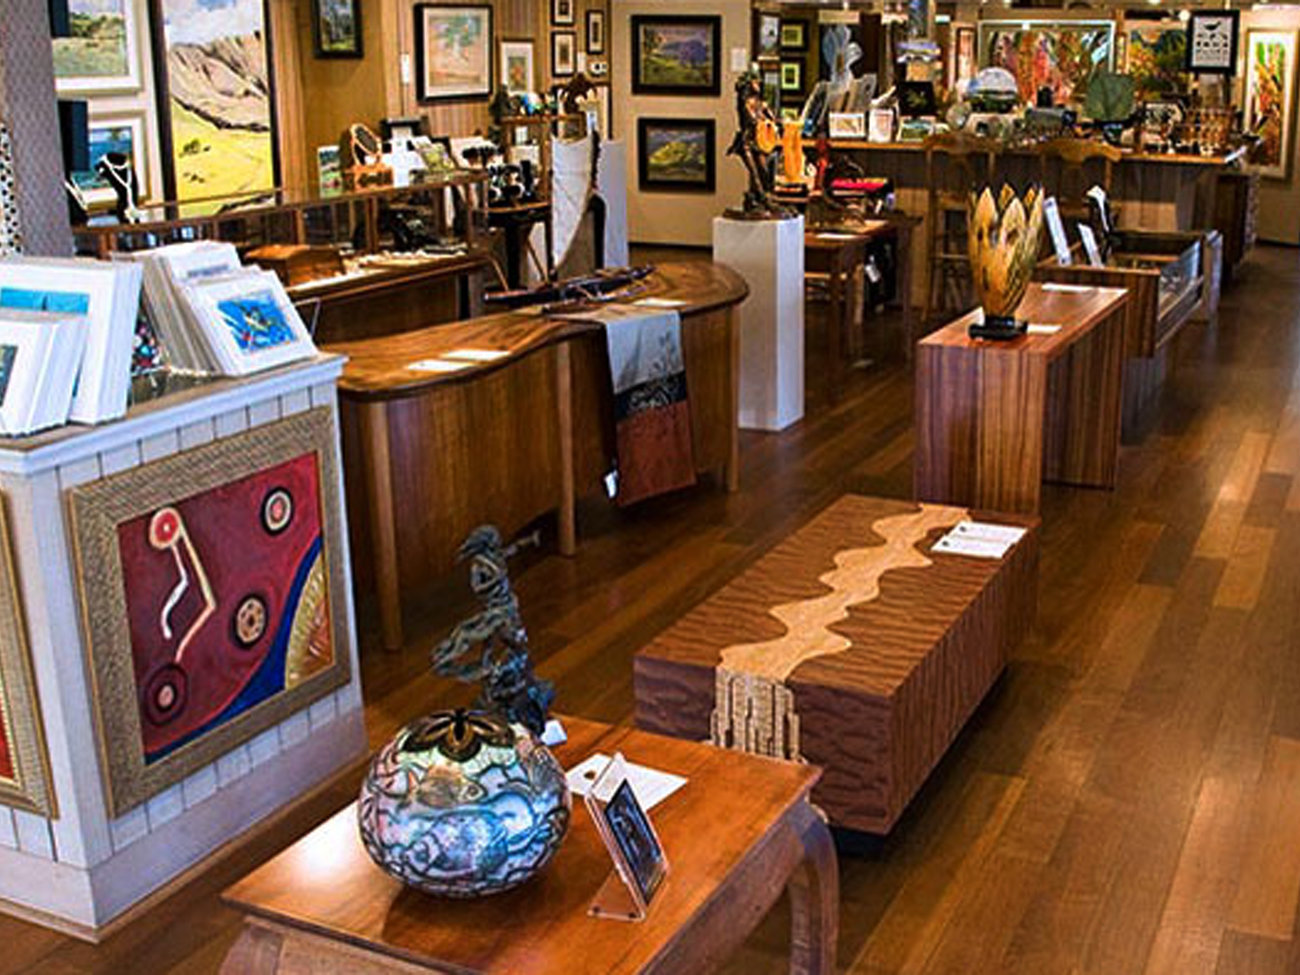 Hana Coast Gallery Shop in Maui